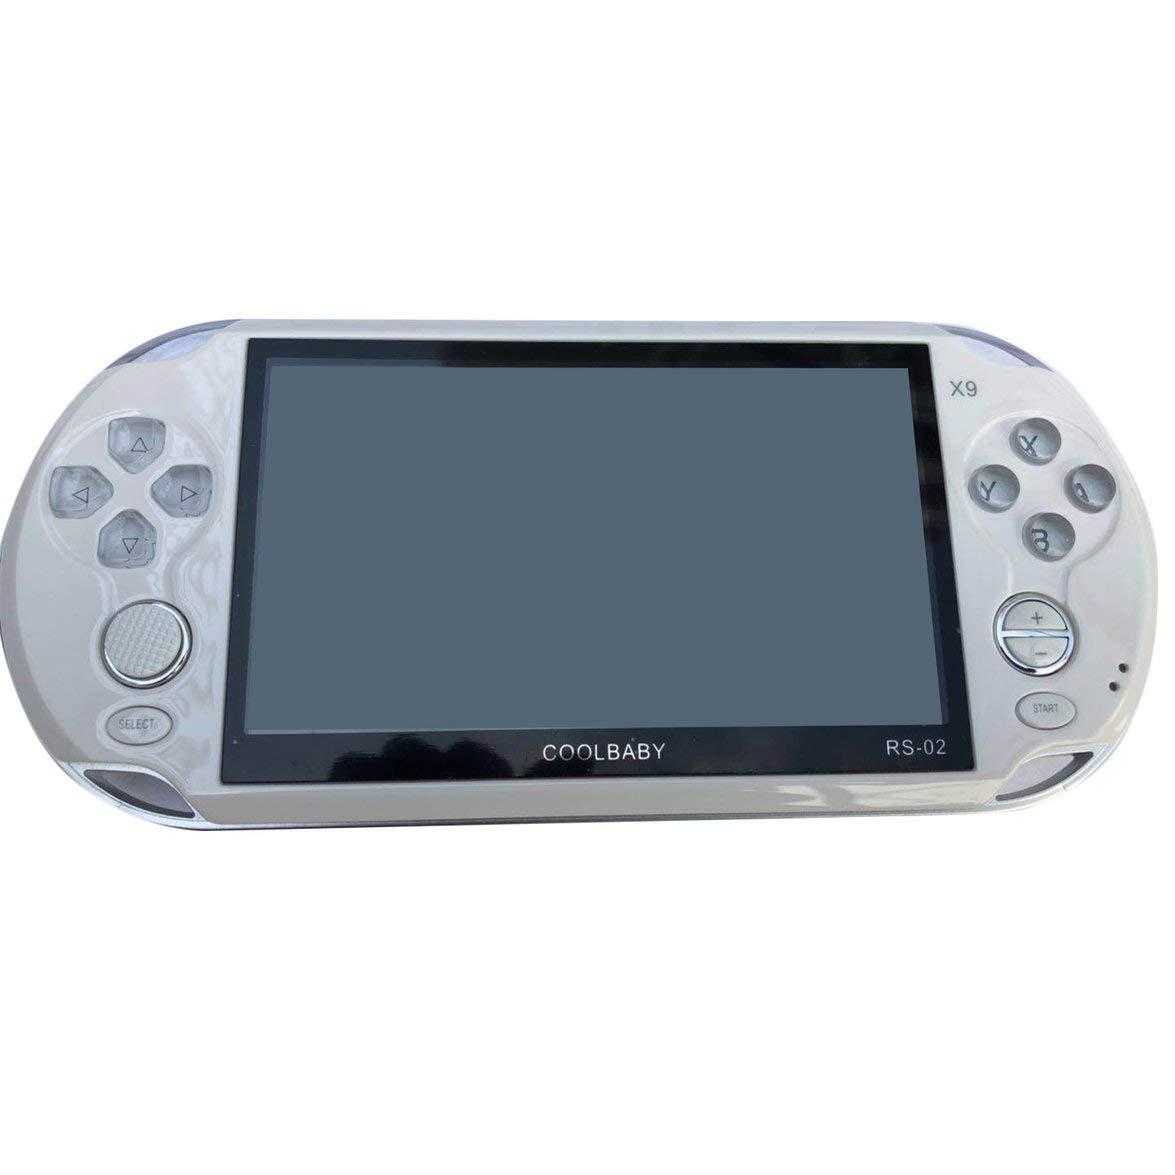 Pandamama Portable Size 5.0 Inch Large Screen 8GB Game Console Handheld Game Player MP3 Player Gamepad with Classic Games by Pandamama (Image #1)